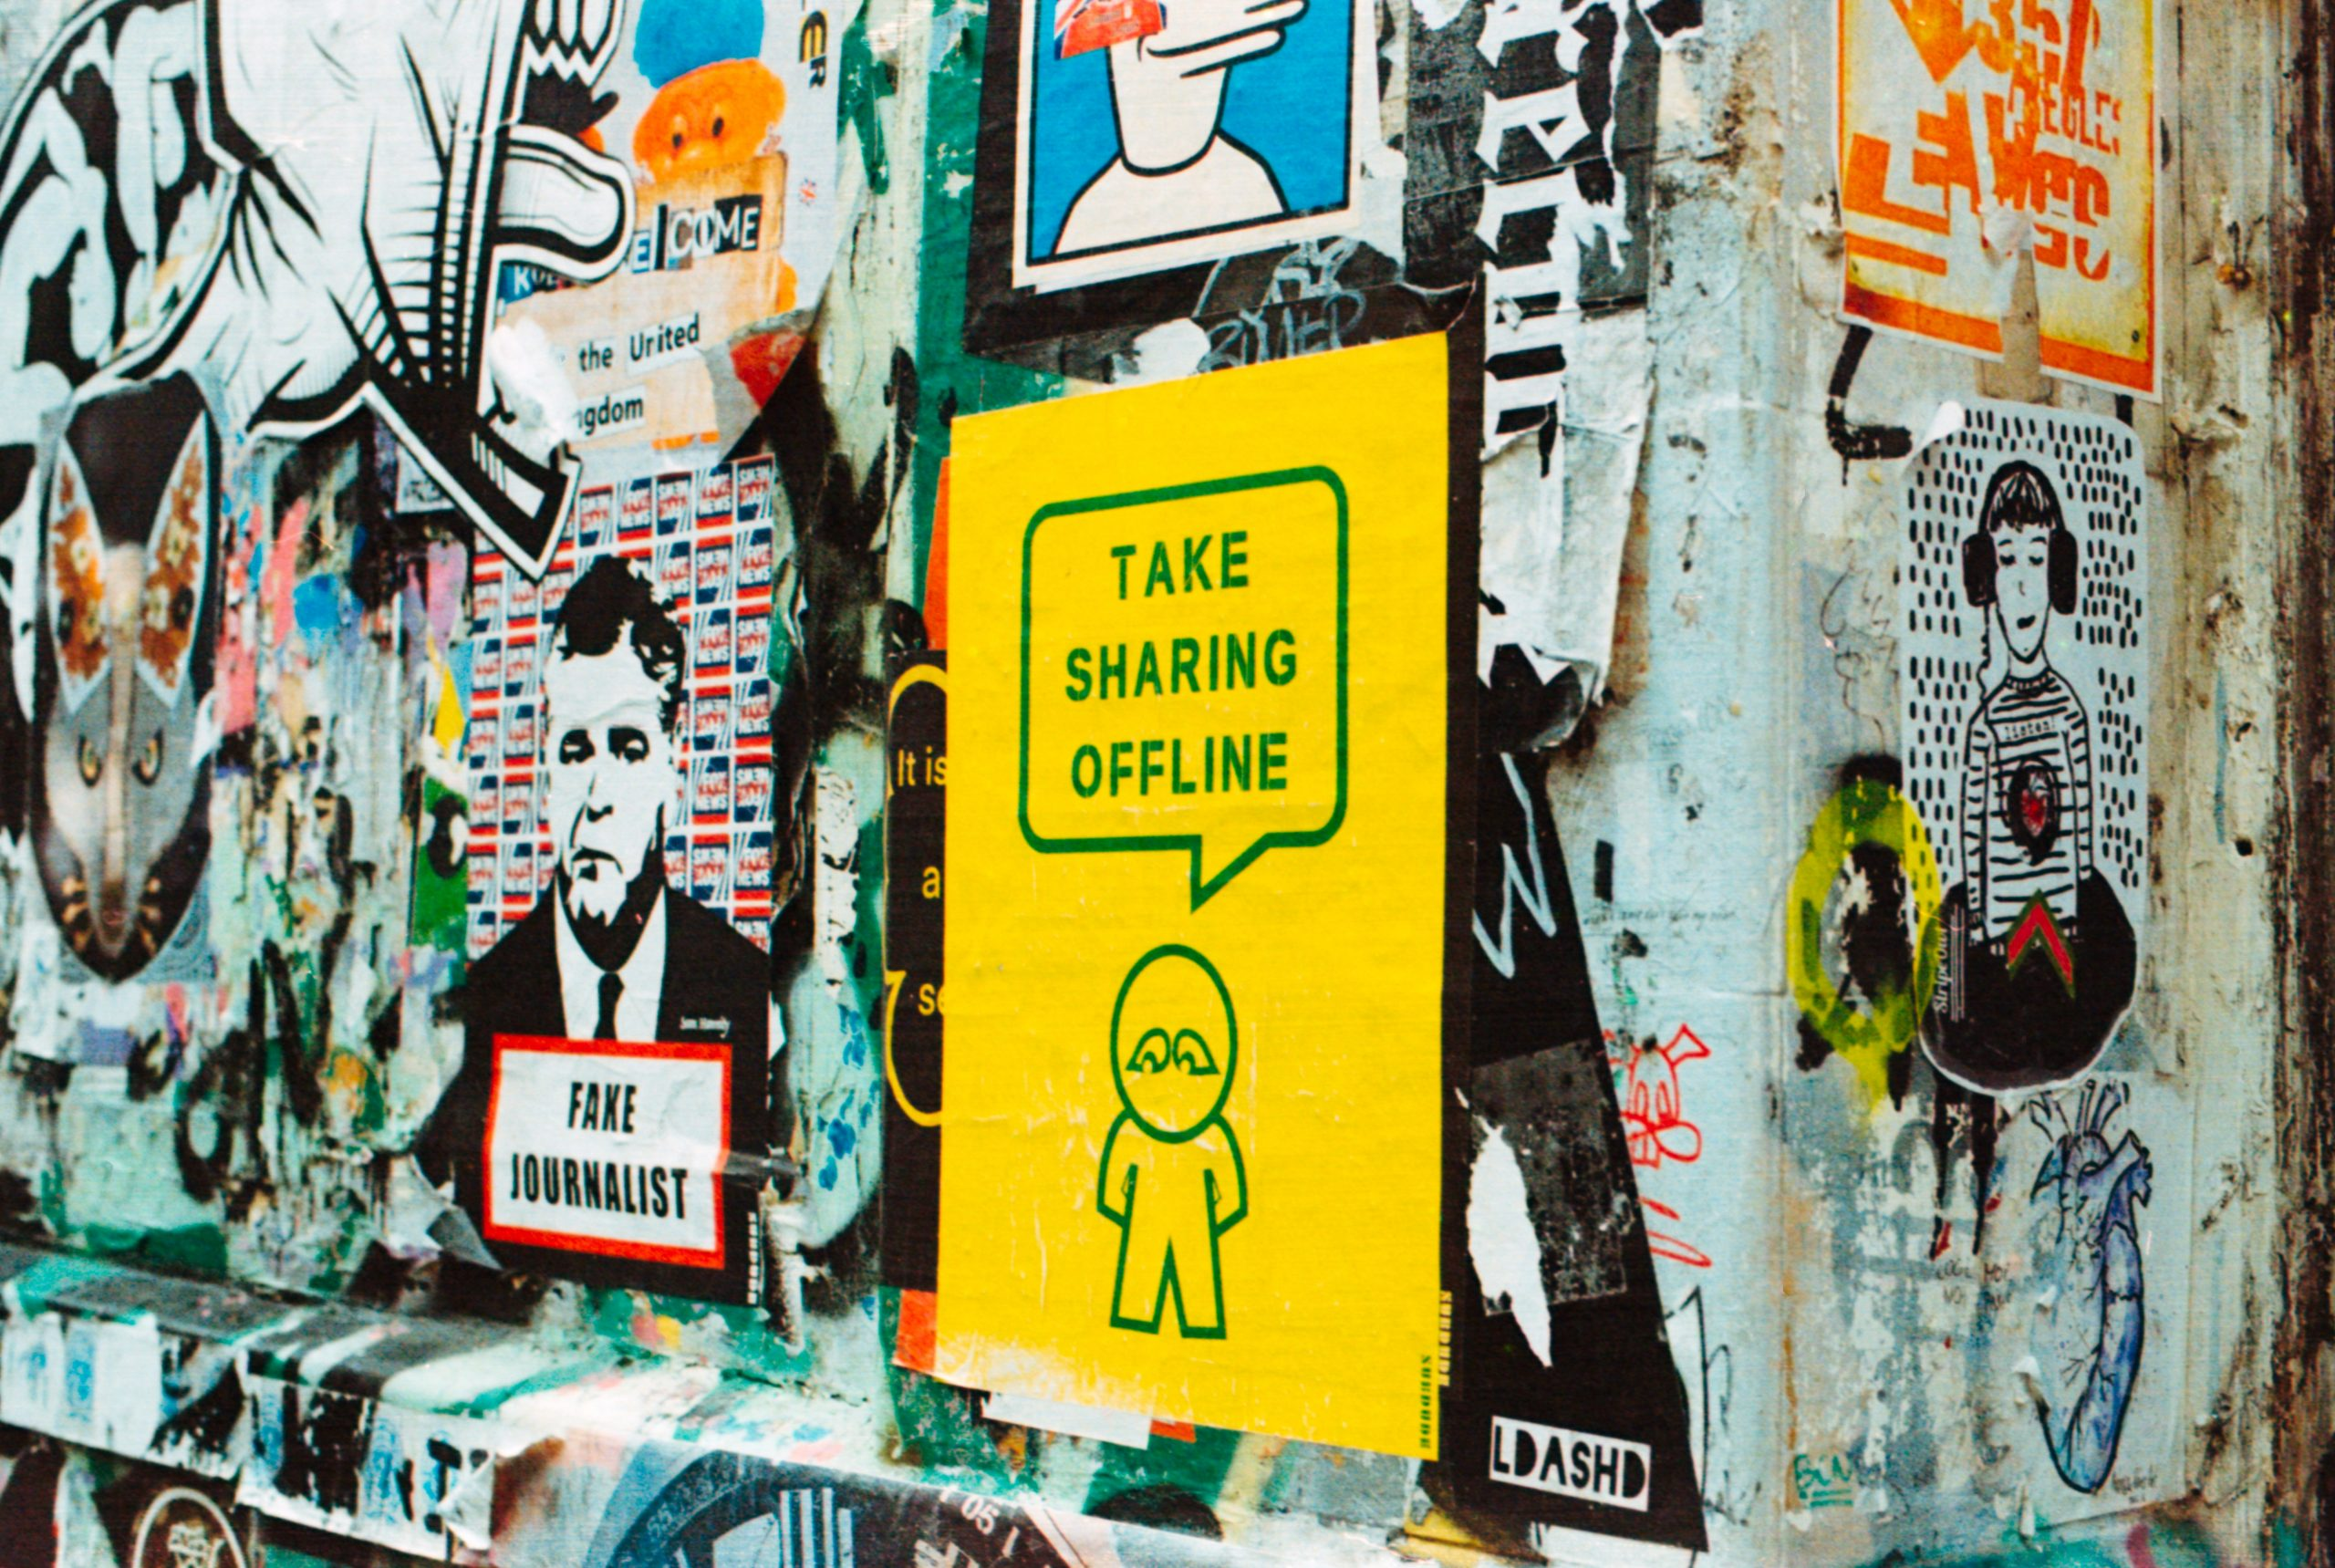 """Affiche sauvage dont l'une dit """"take sharing offline"""""""